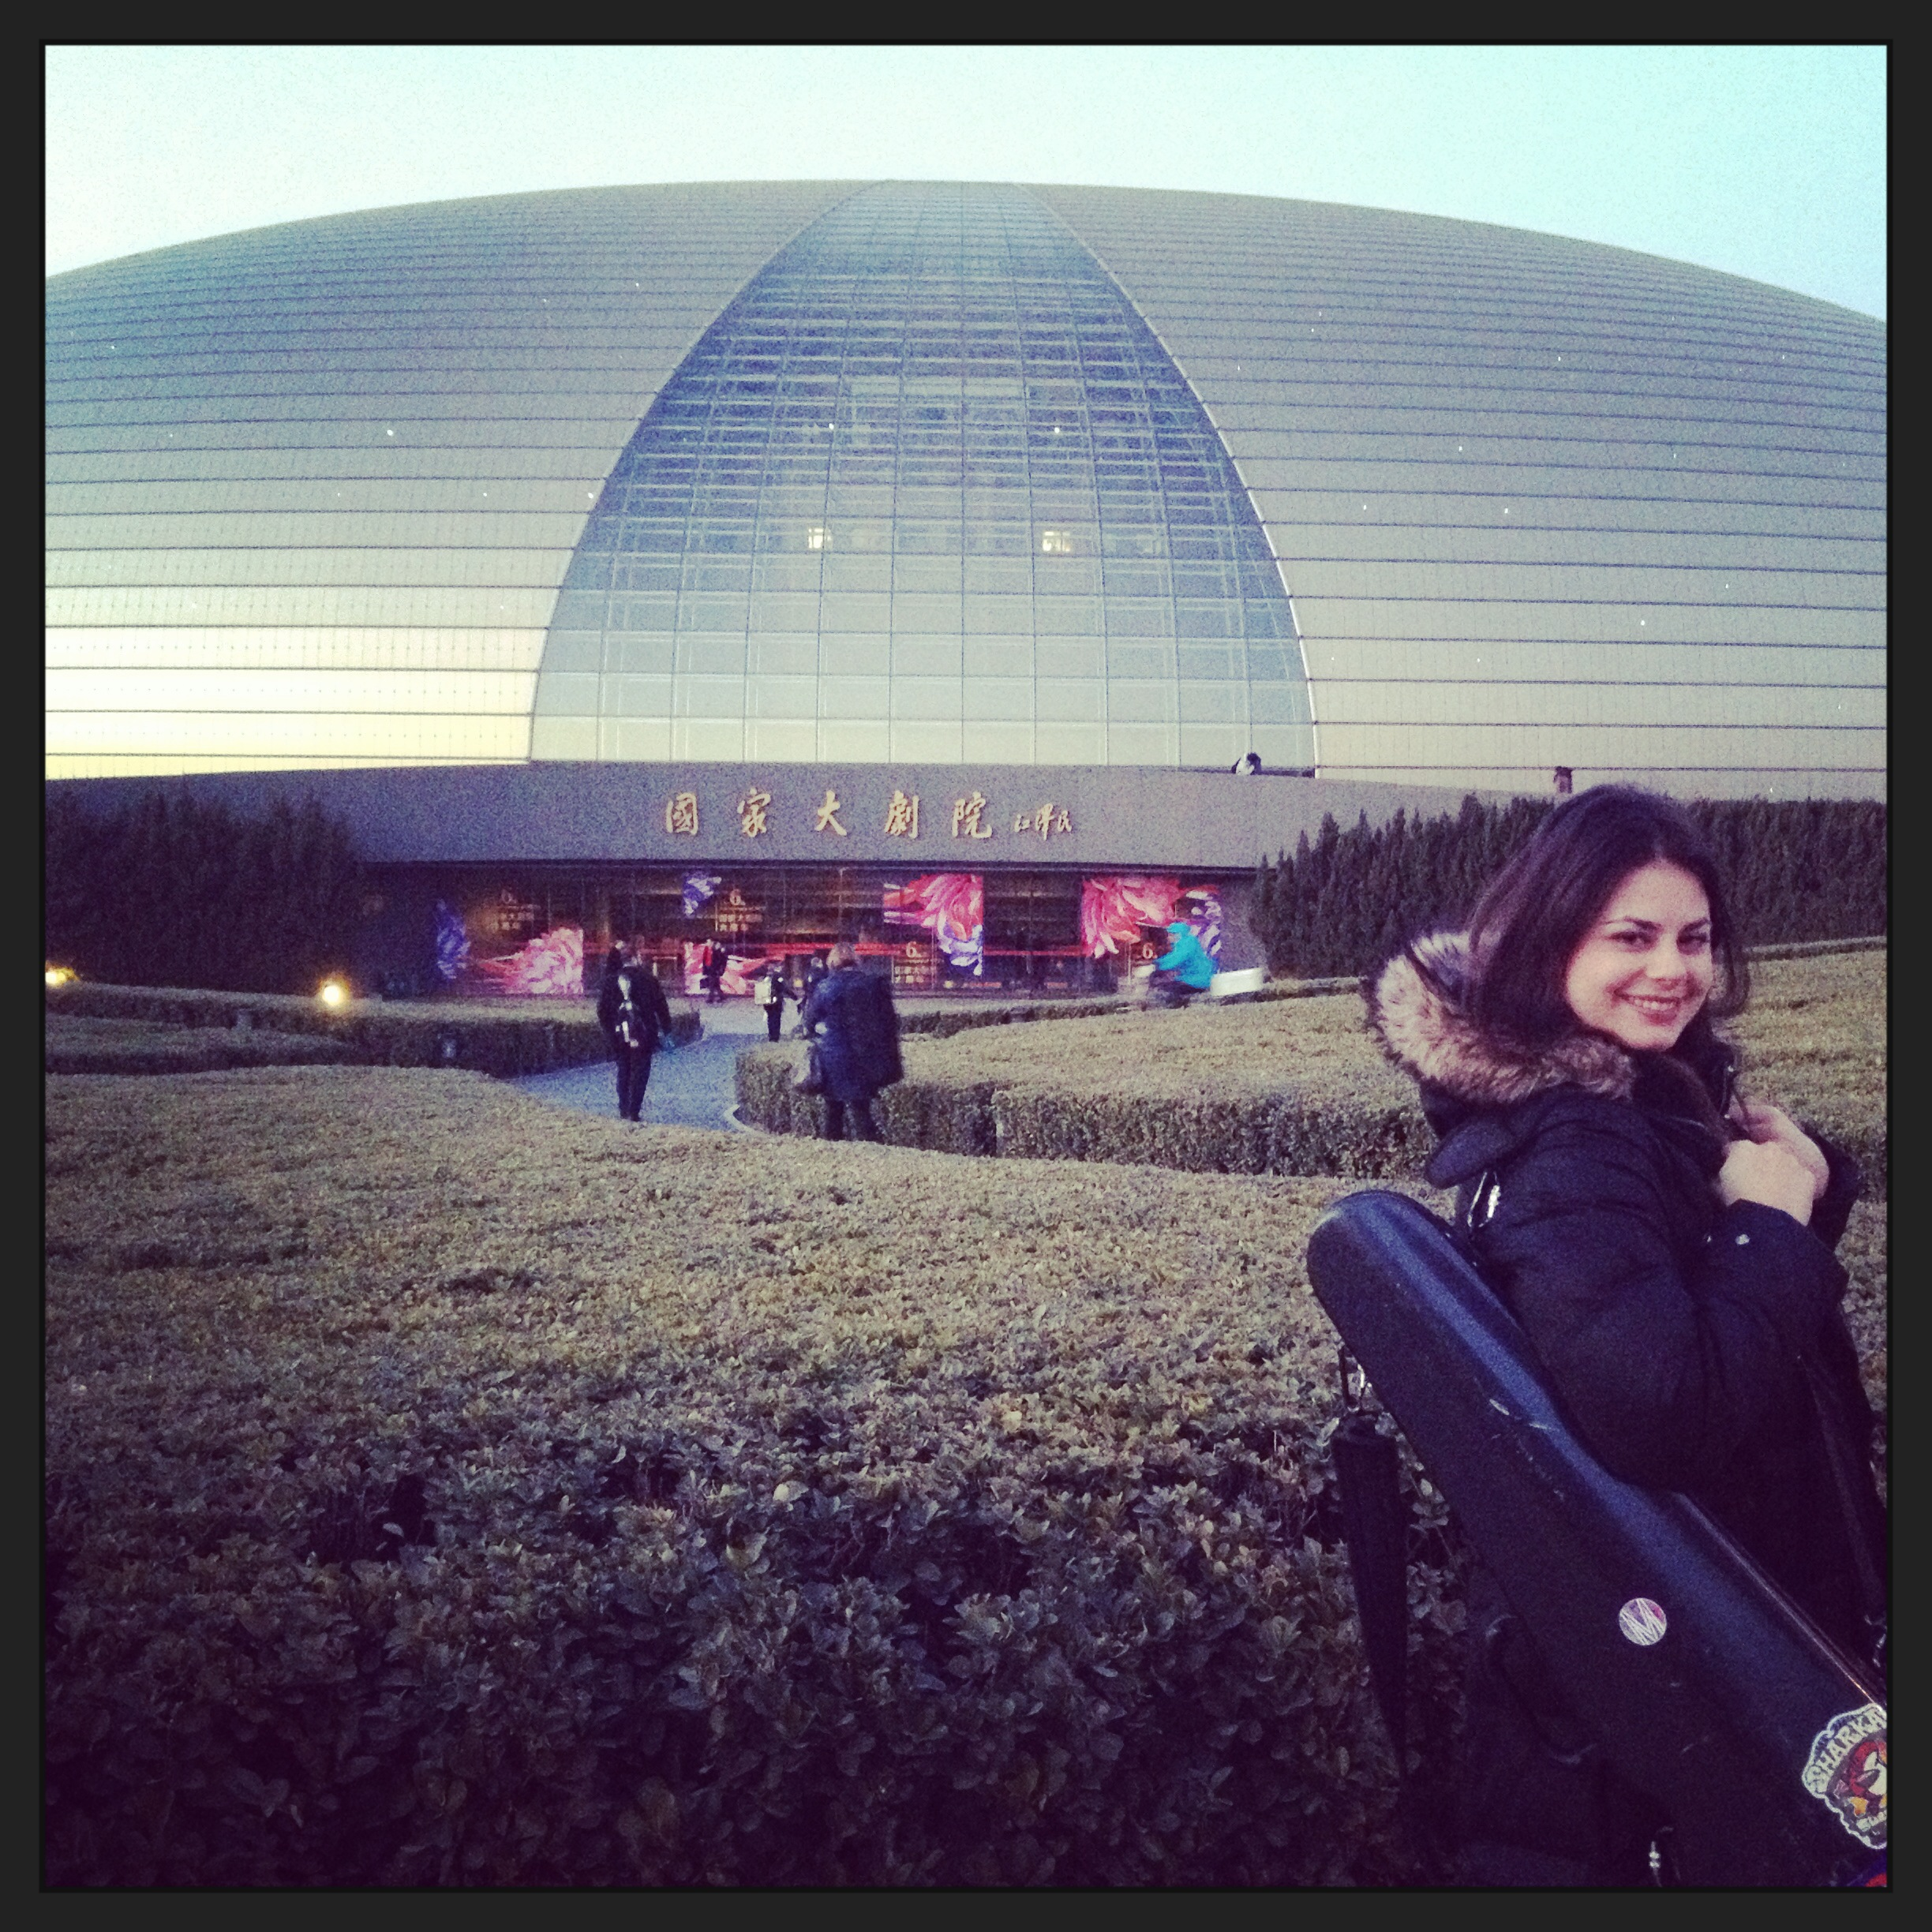 Getting ready to Perform at Beijing's National Center for the Performing Arts.